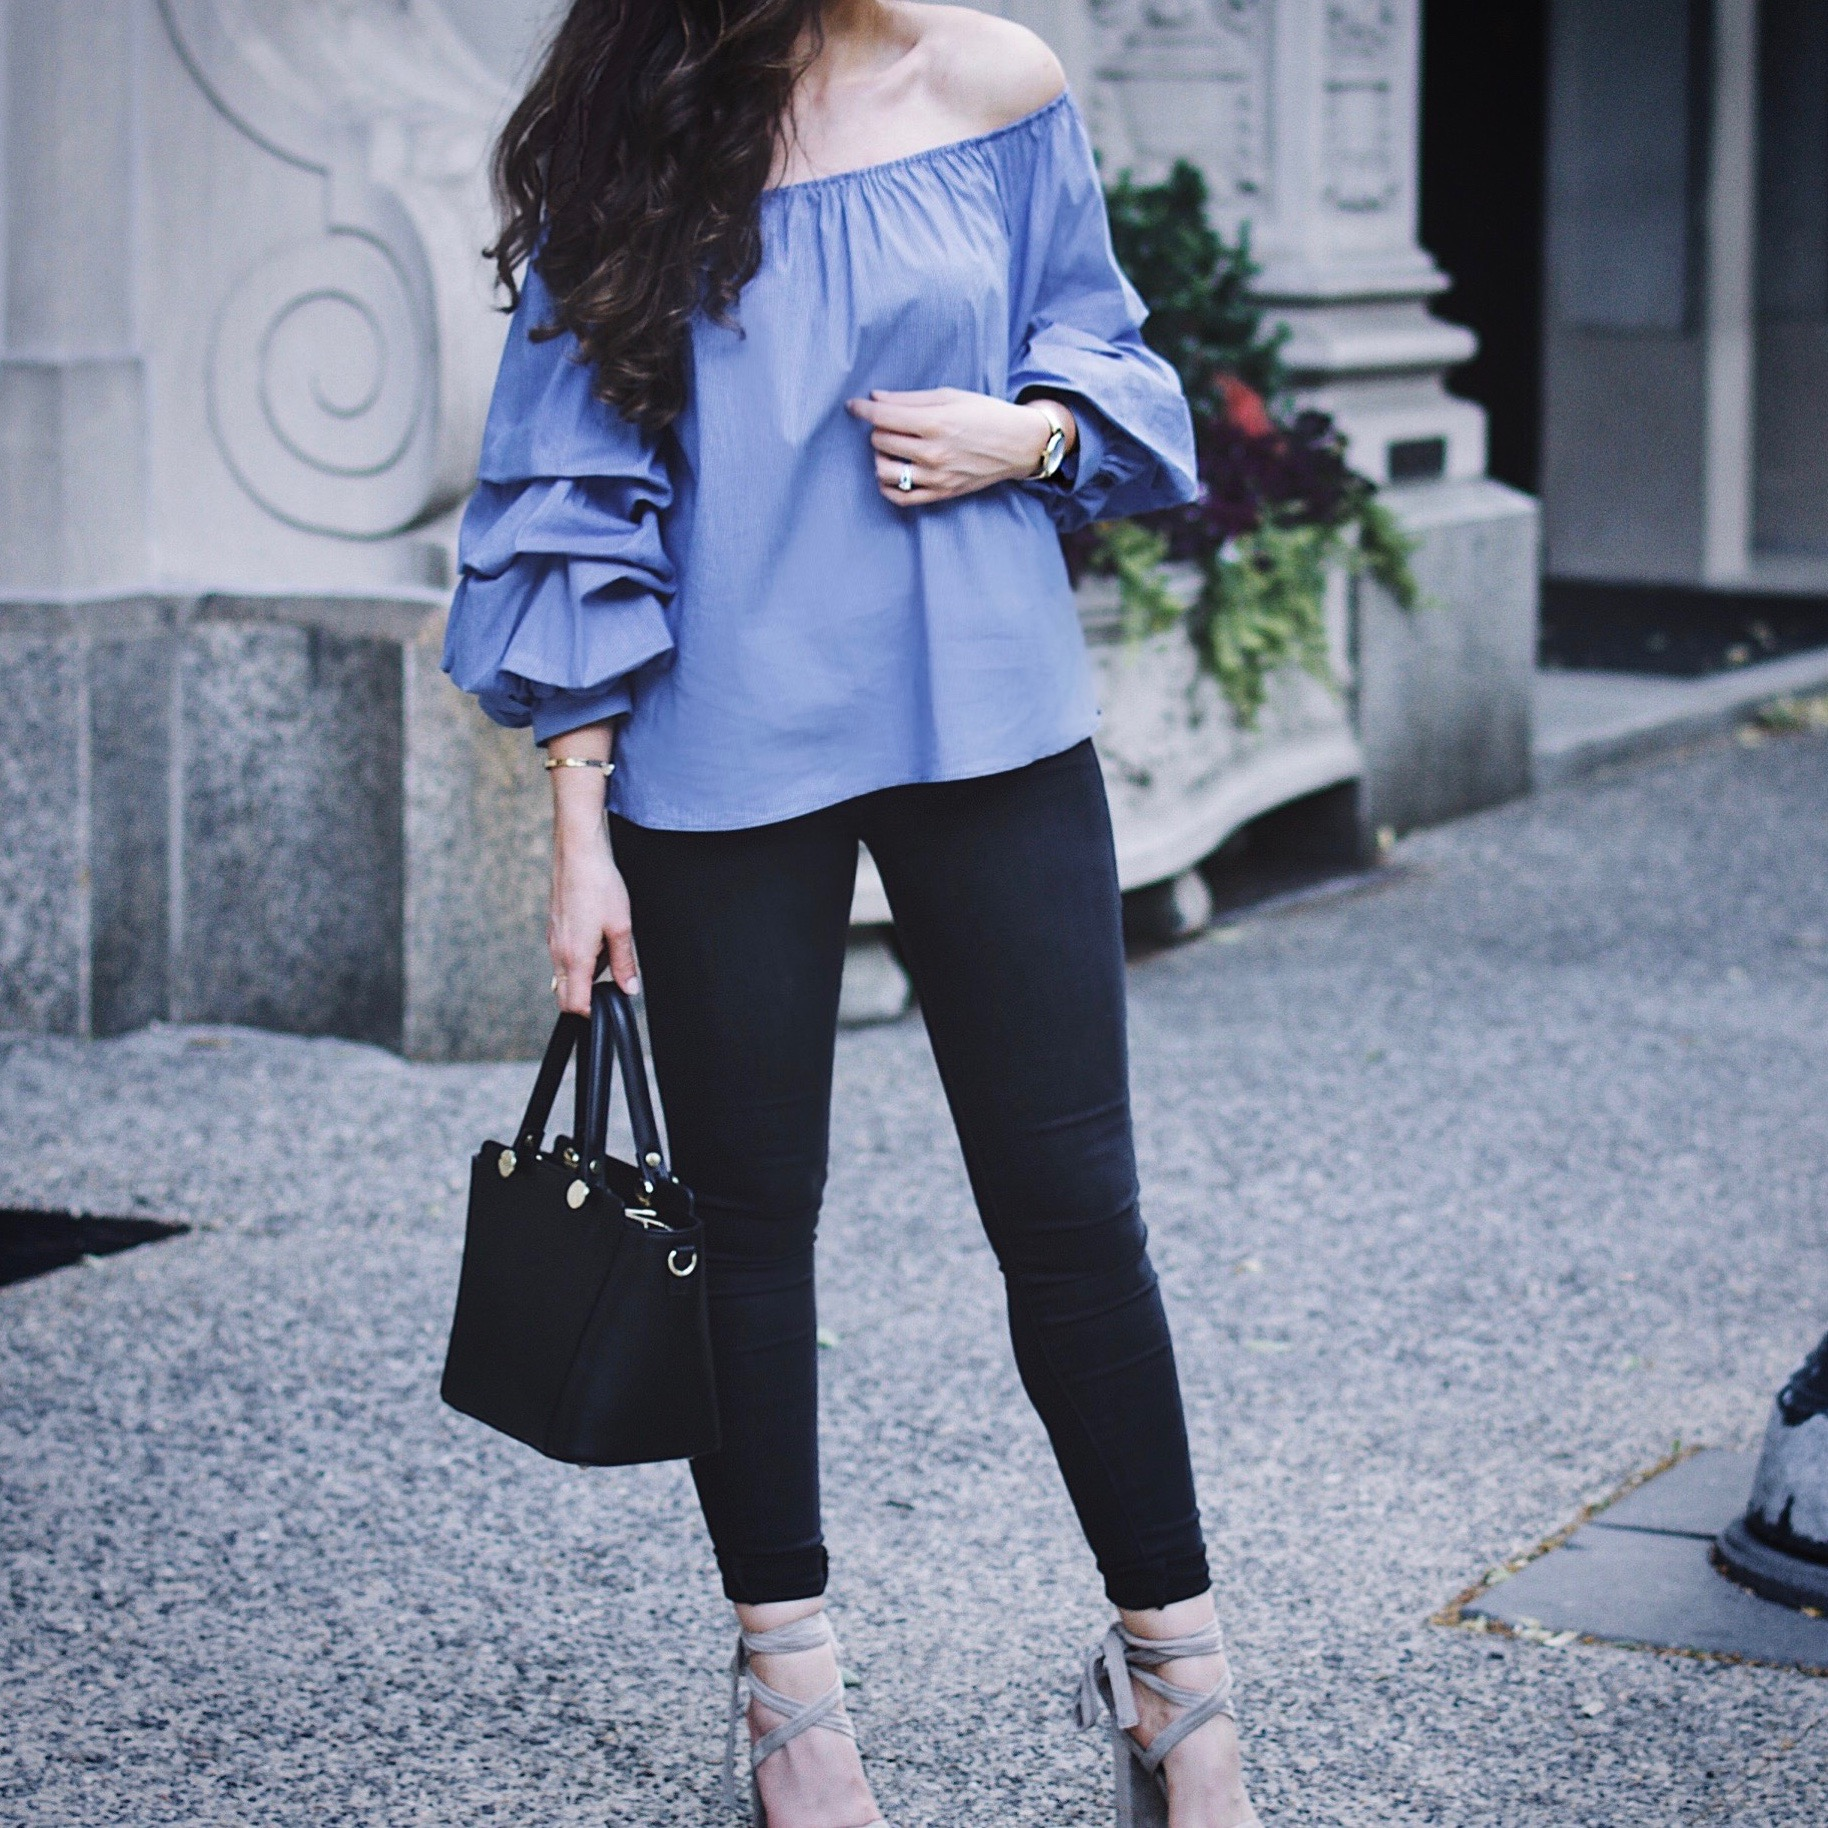 SK-II #changedestiny | The Expiry Date | Zara Top, Mott & Bow Denim, Lulu Milano Bag, Steve Madden Lace Up Christey